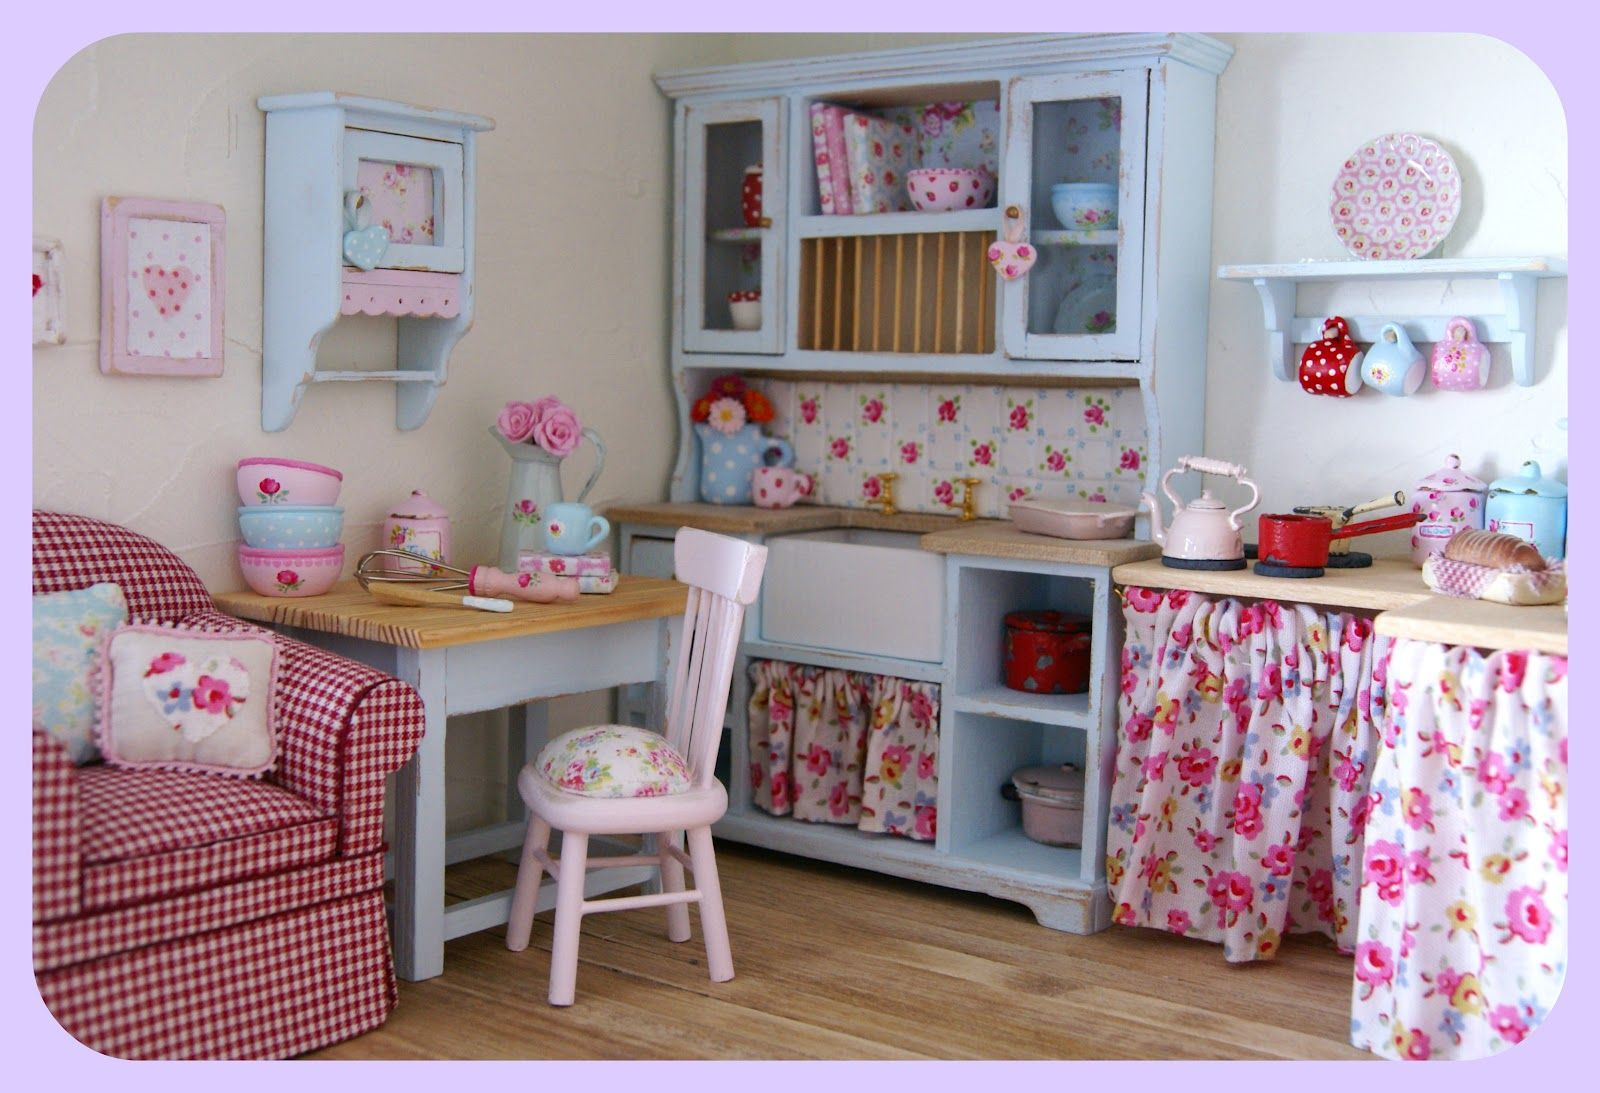 Found On Cath Kidston S Fb Page In Her Dream Room In A: Lovejoy Bears: Cottage Dentro De La Sirena